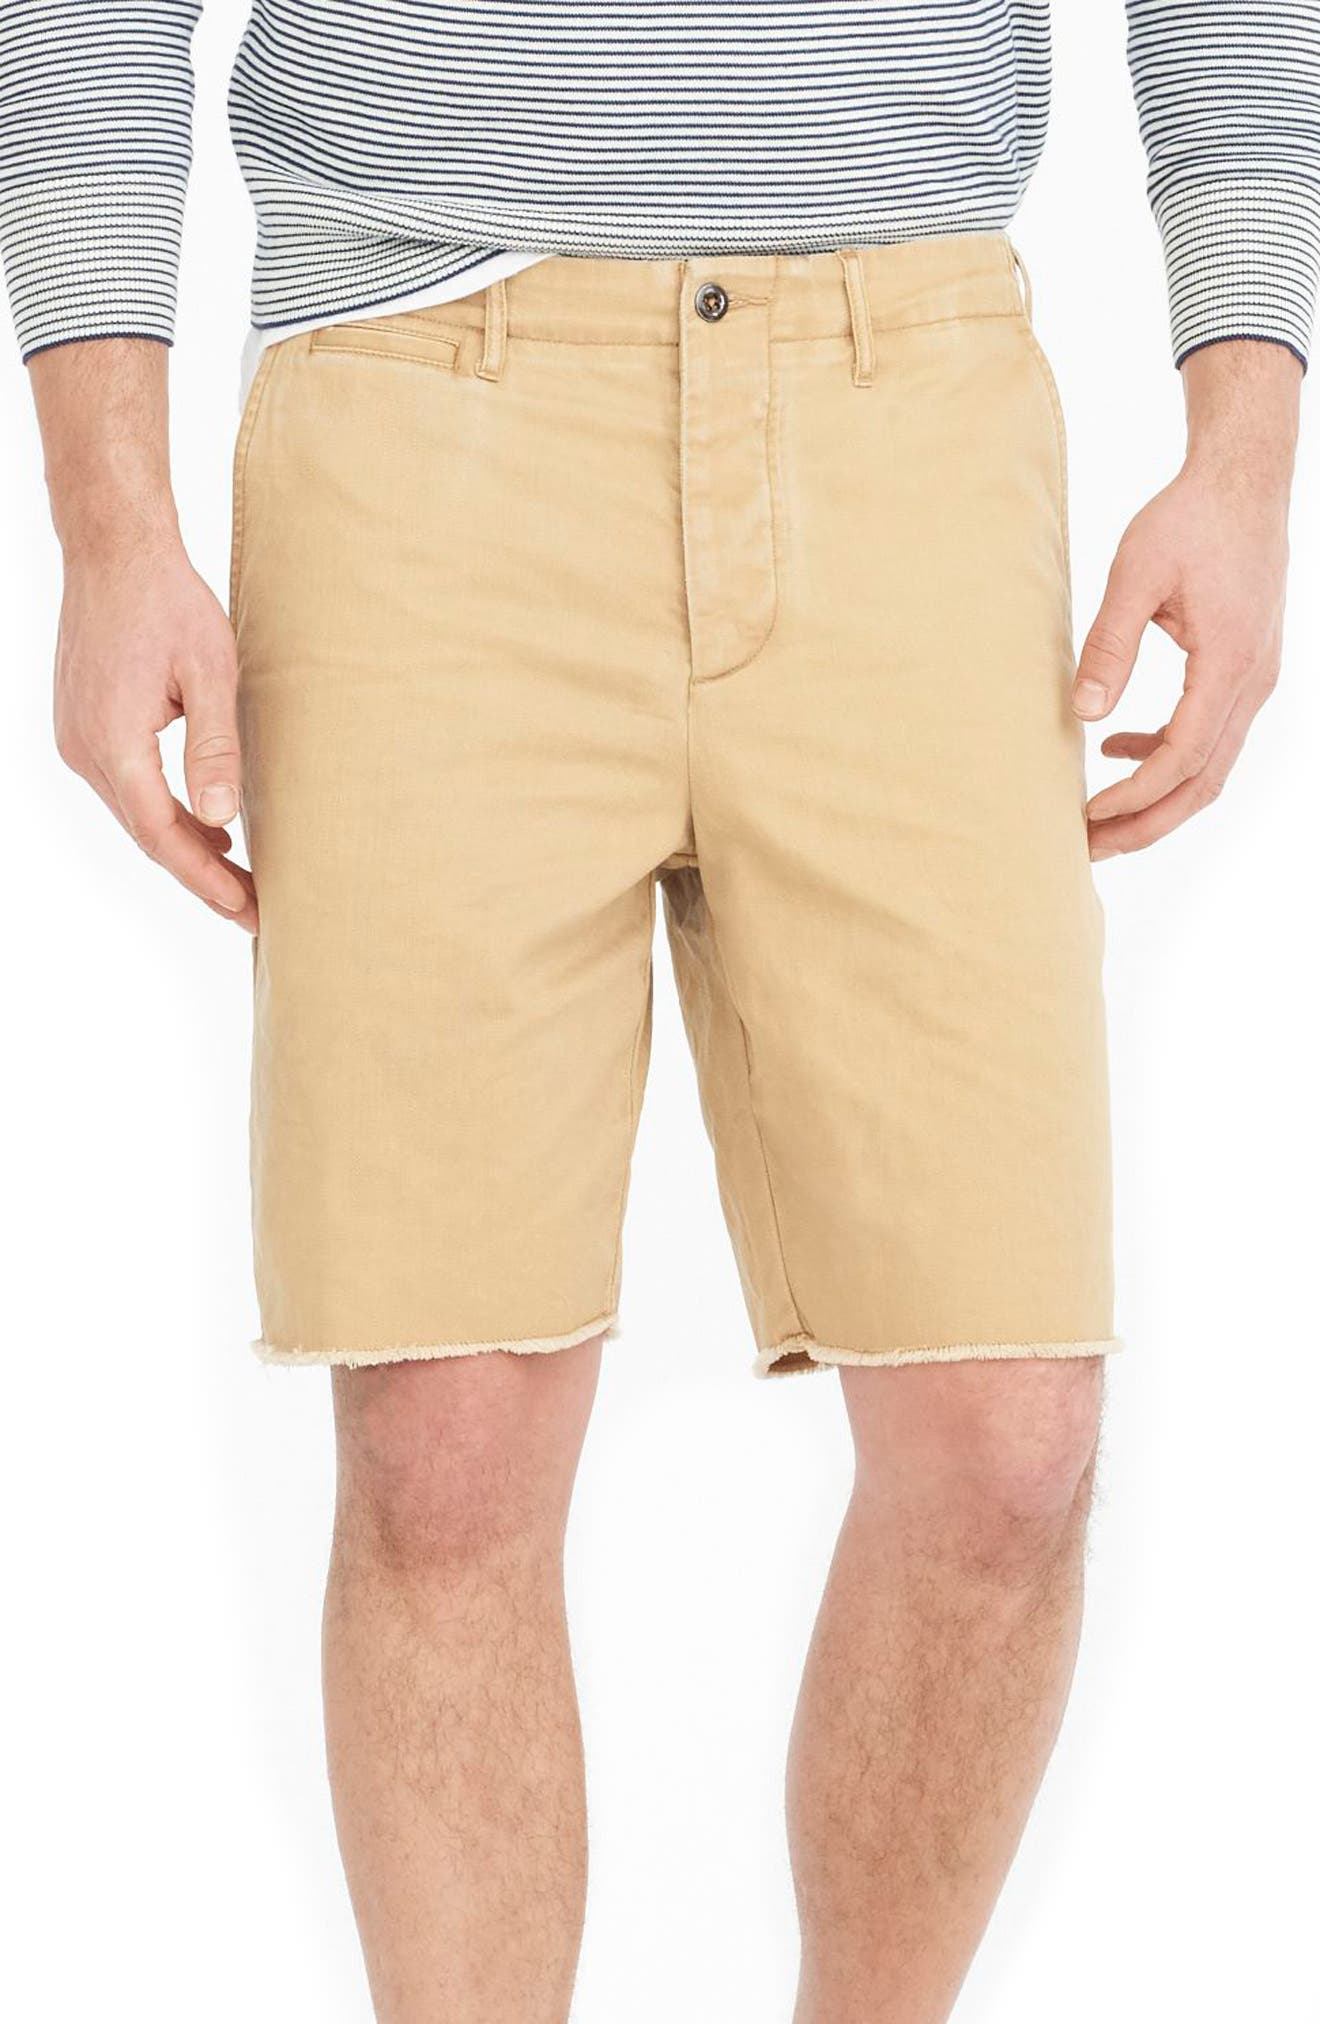 Distressed Officer's Shorts,                             Main thumbnail 1, color,                             251